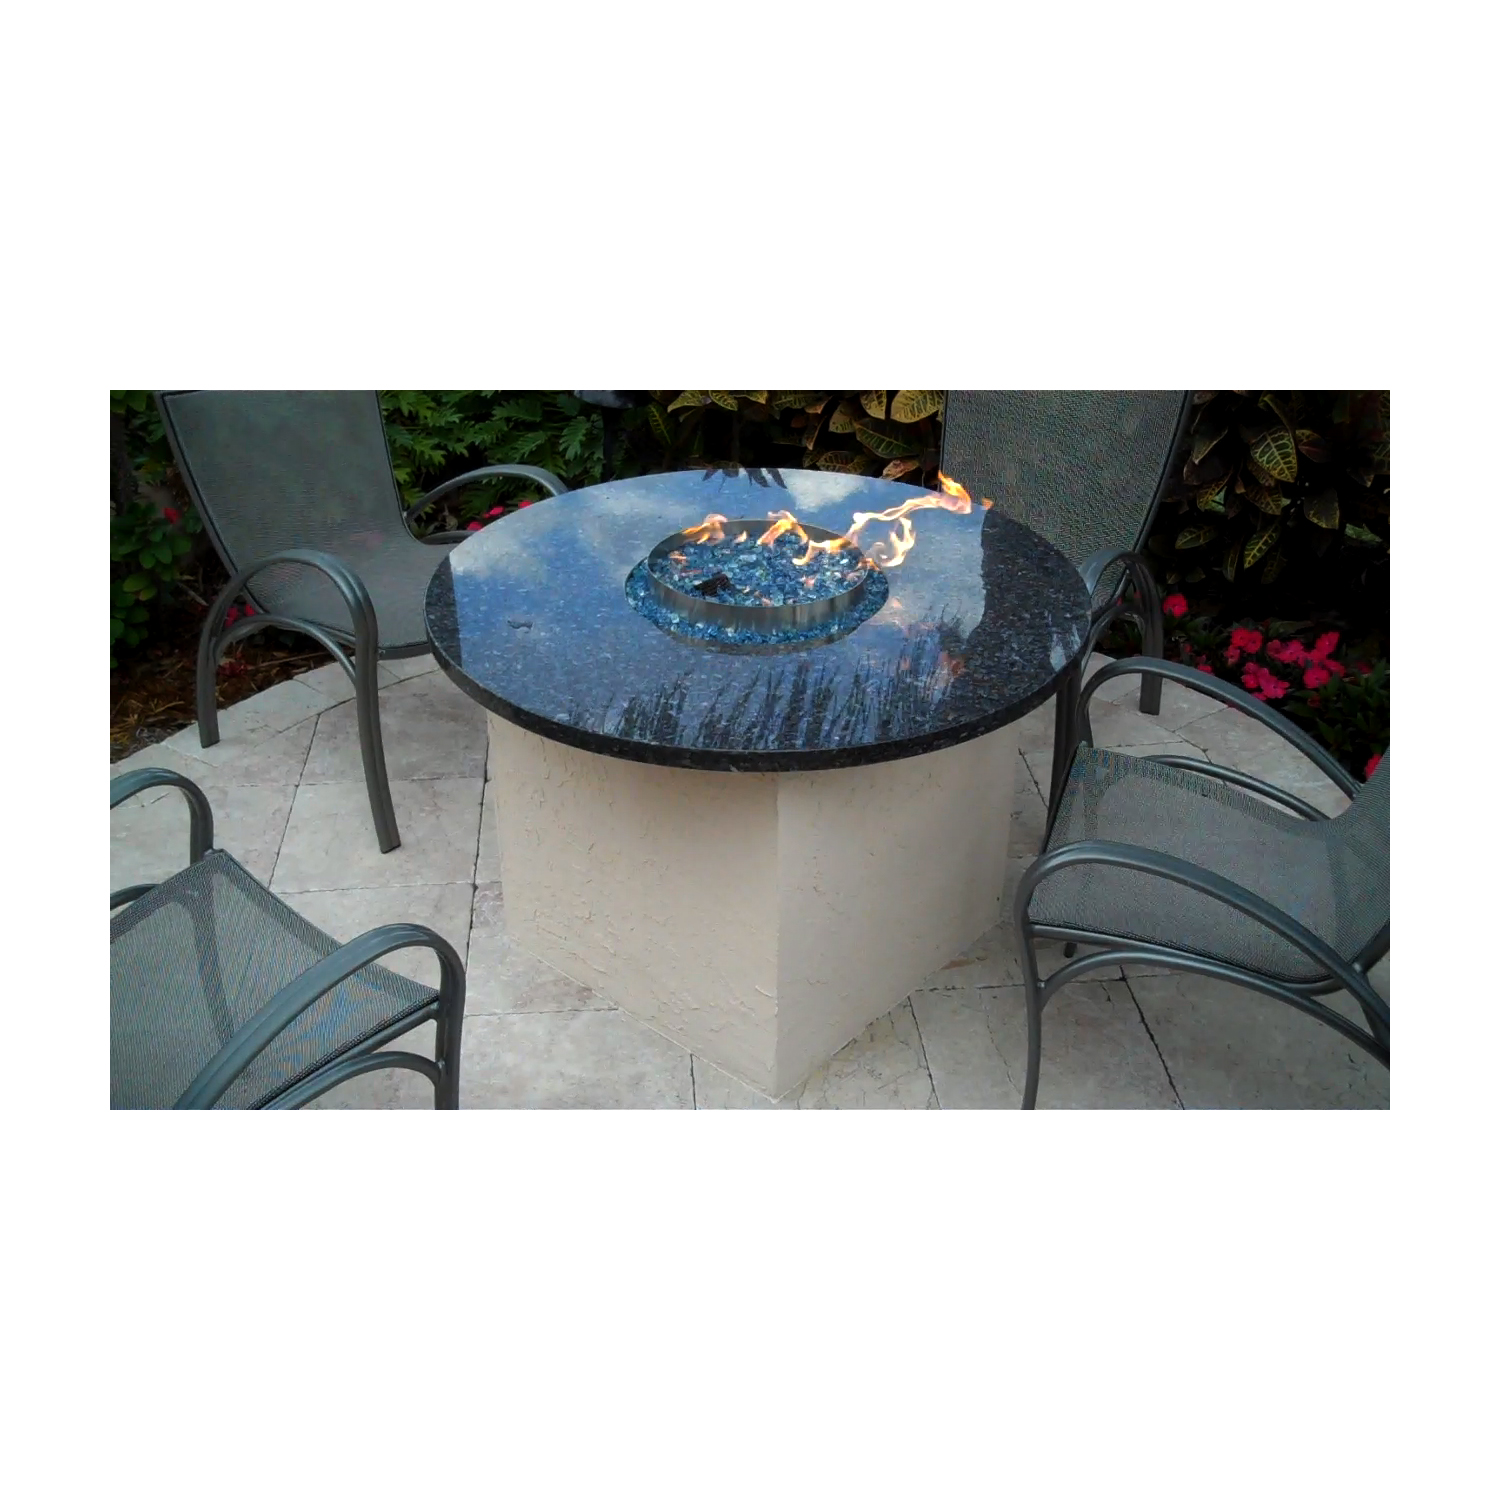 lp gas fireplace and fire pit stop burning or lose flame height